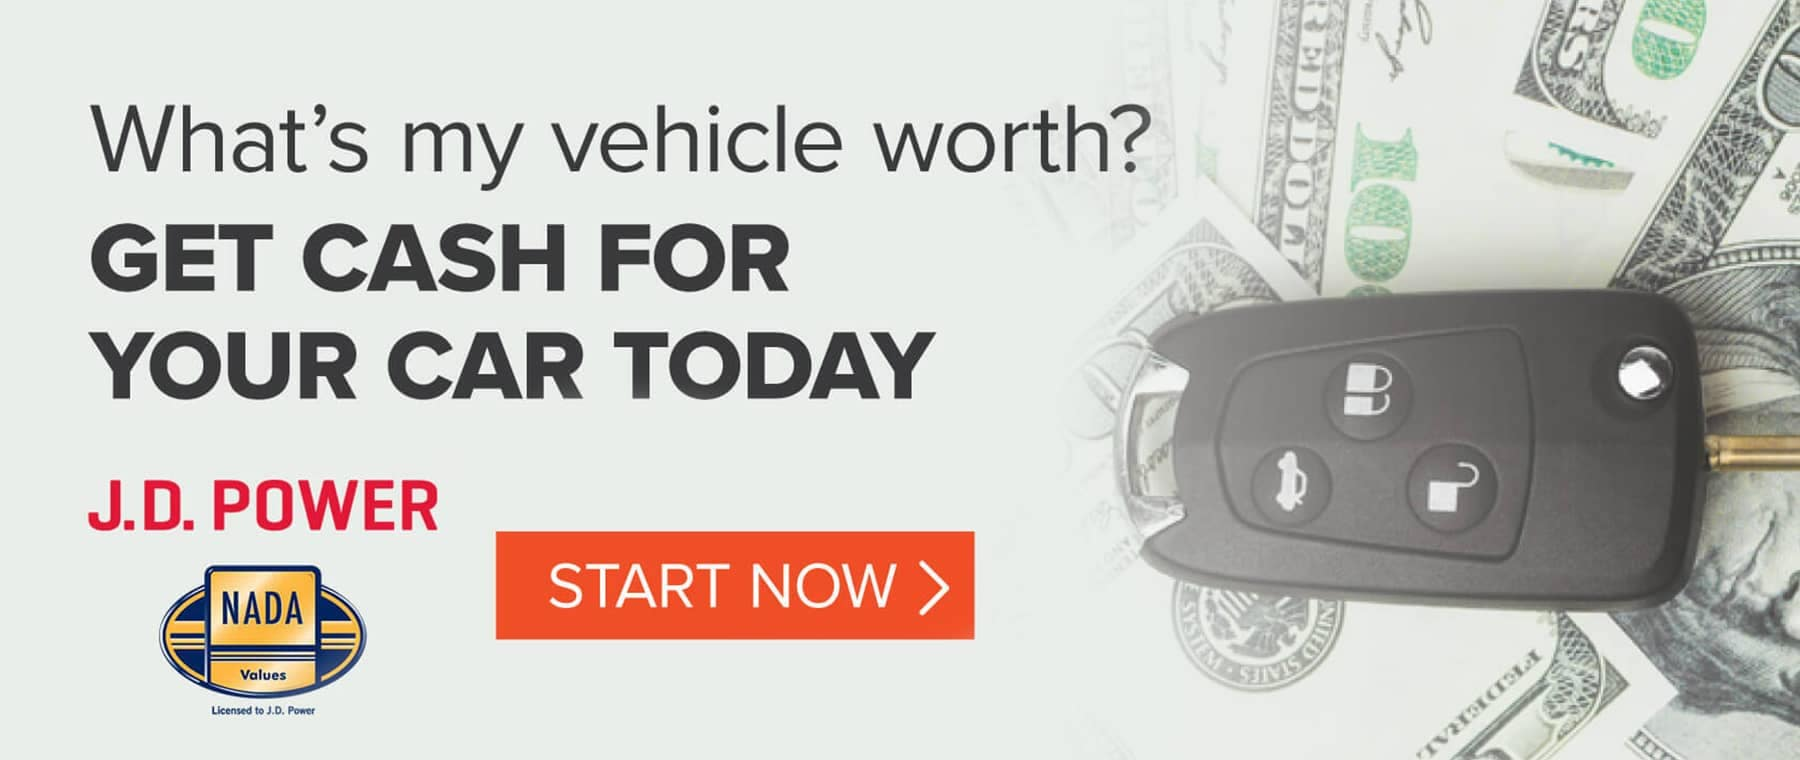 Whats My Vehicle Worth? Get Cash For Your Car Today